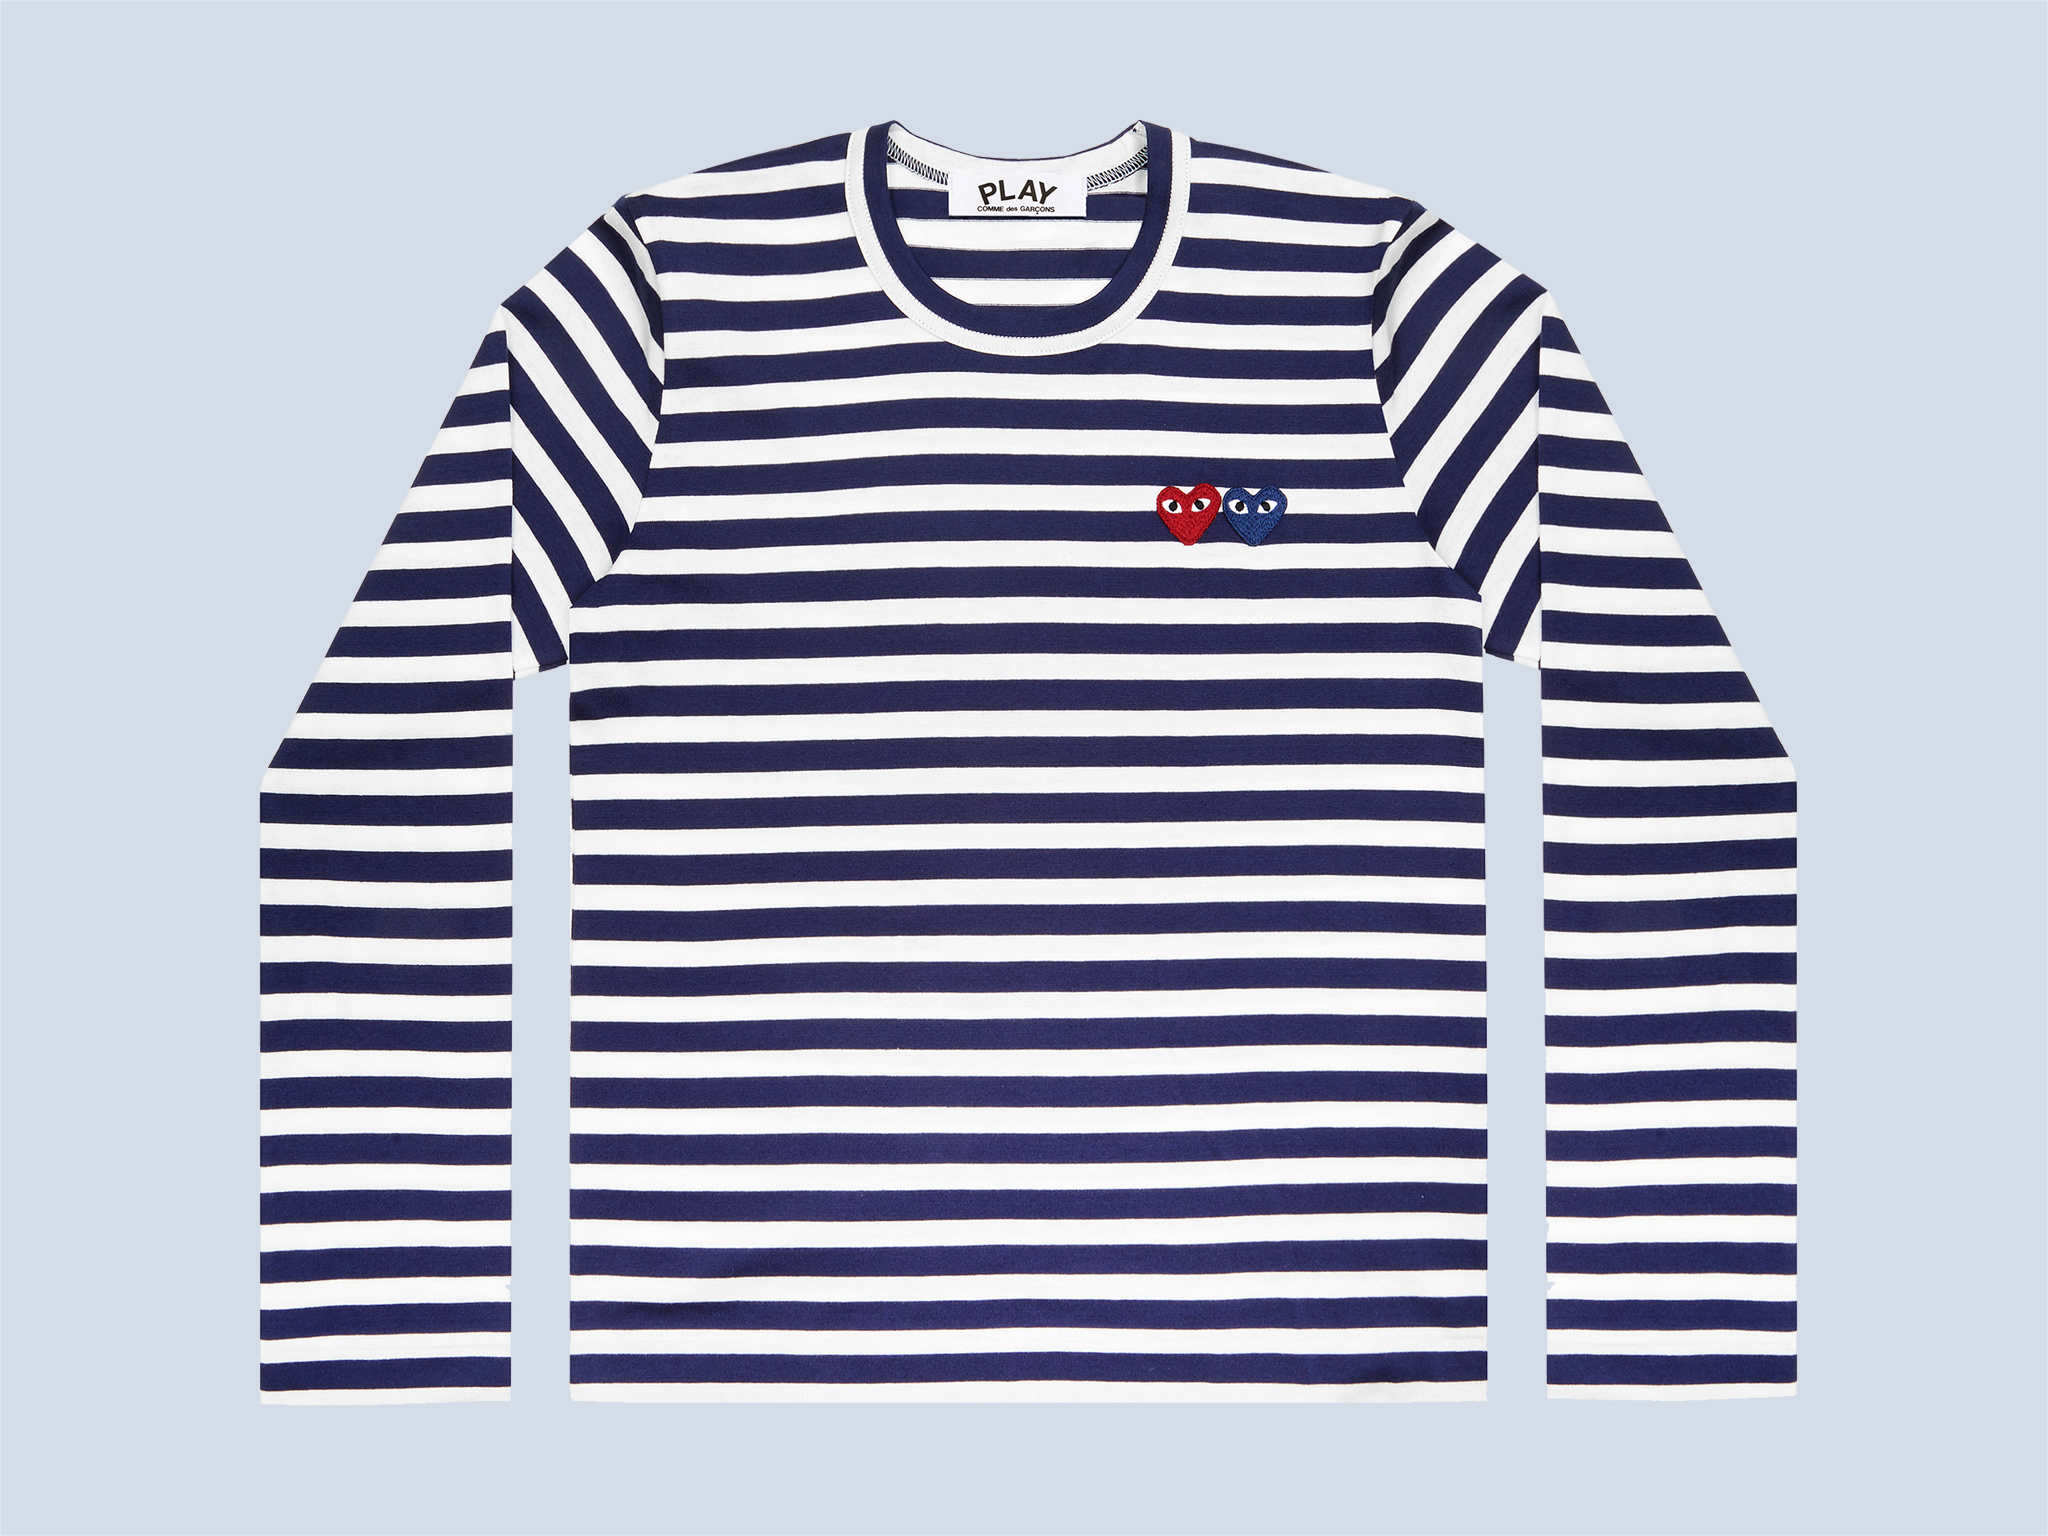 CDG Play Striped T-Shirt, Valentine's Day gifts for him